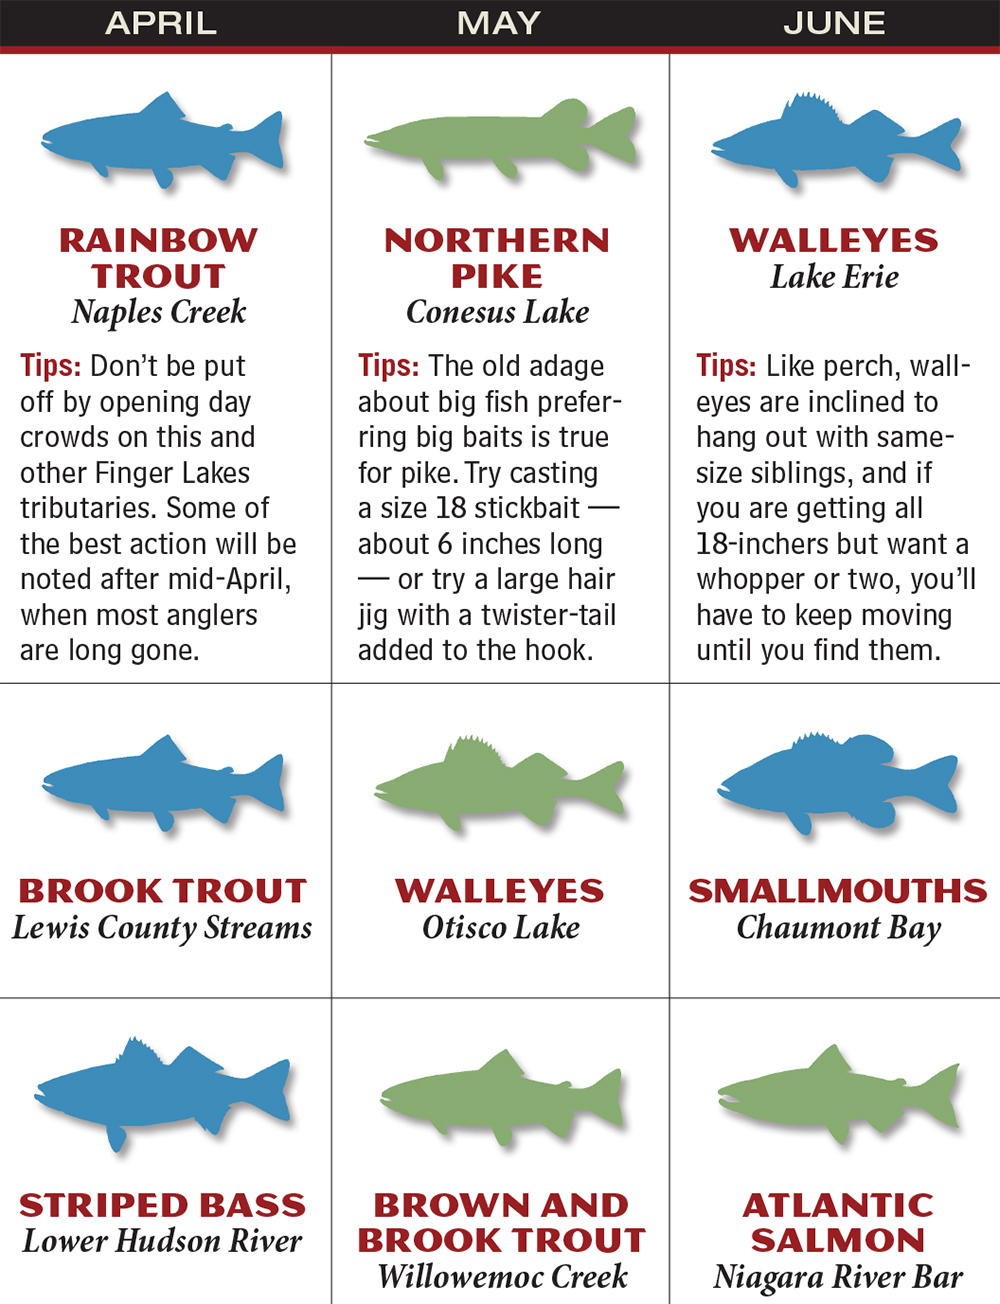 New York 2016 Fishing Calendar